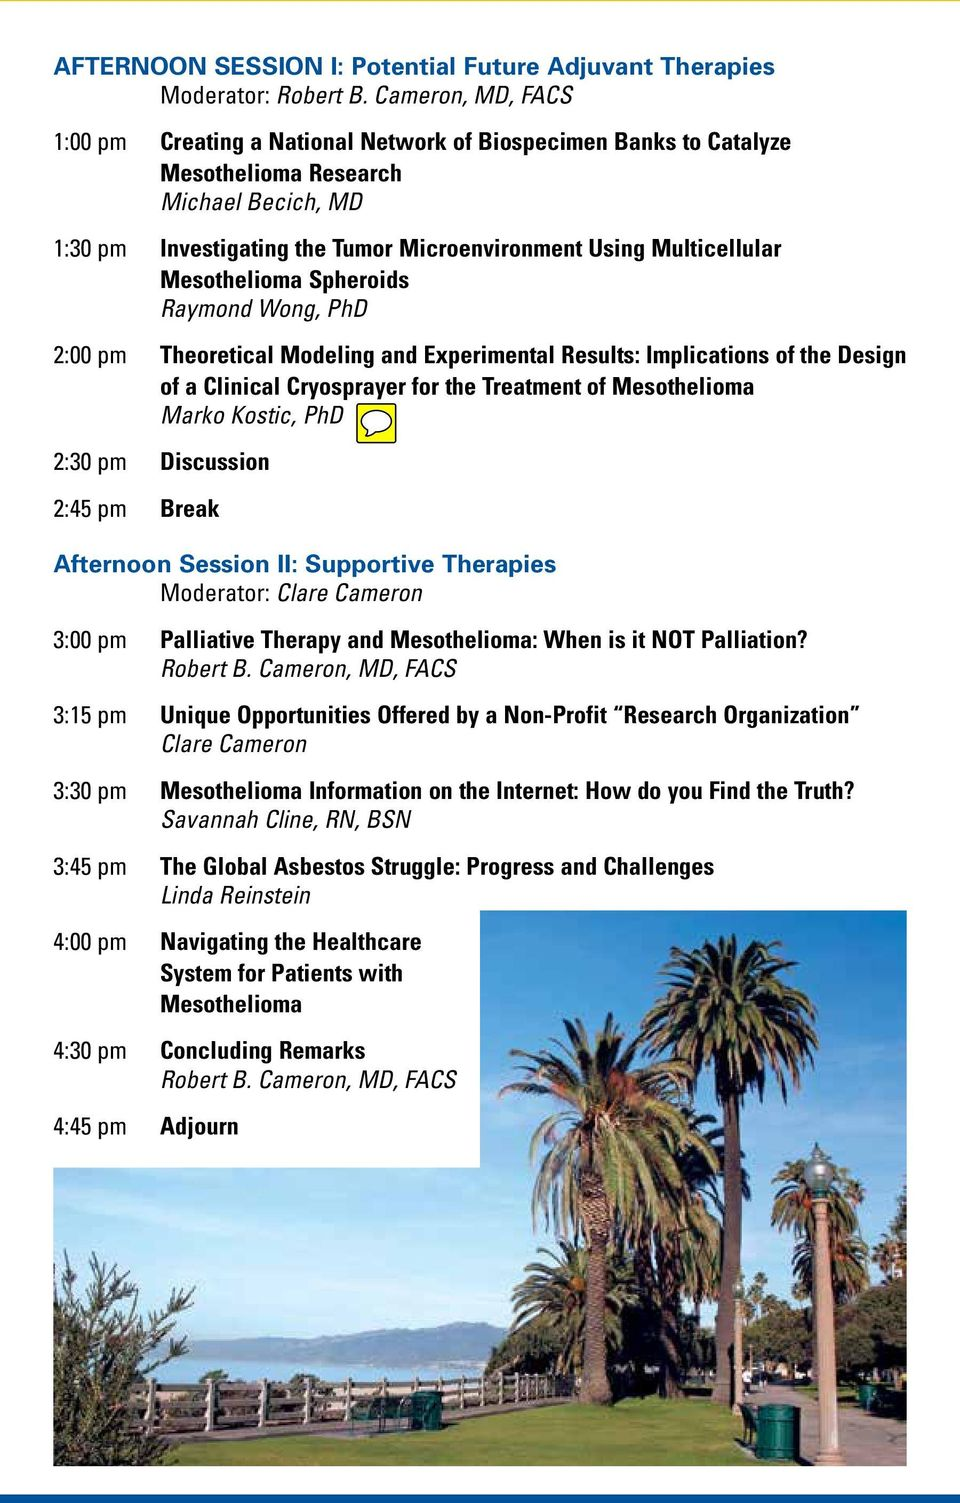 the Treatment of Mesothelioma Marko Kostic, PhD 2:30 pm Discussion 2:45 pm Break Afternoon Session II: Supportive Therapies Moderator: Clare Cameron 3:00 pm Palliative Therapy and Mesothelioma: When